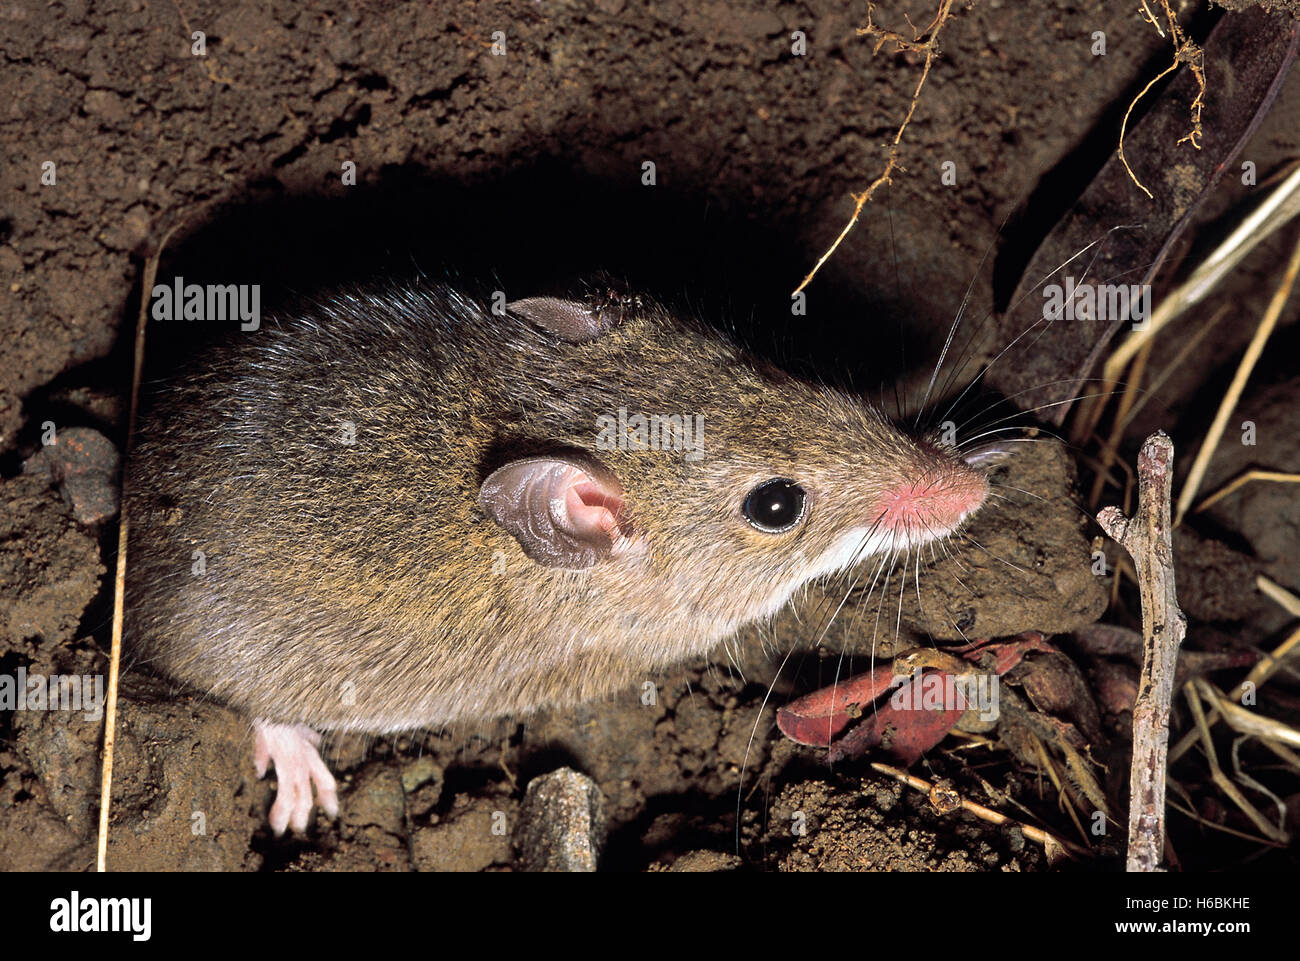 A field mouse Stock Photo